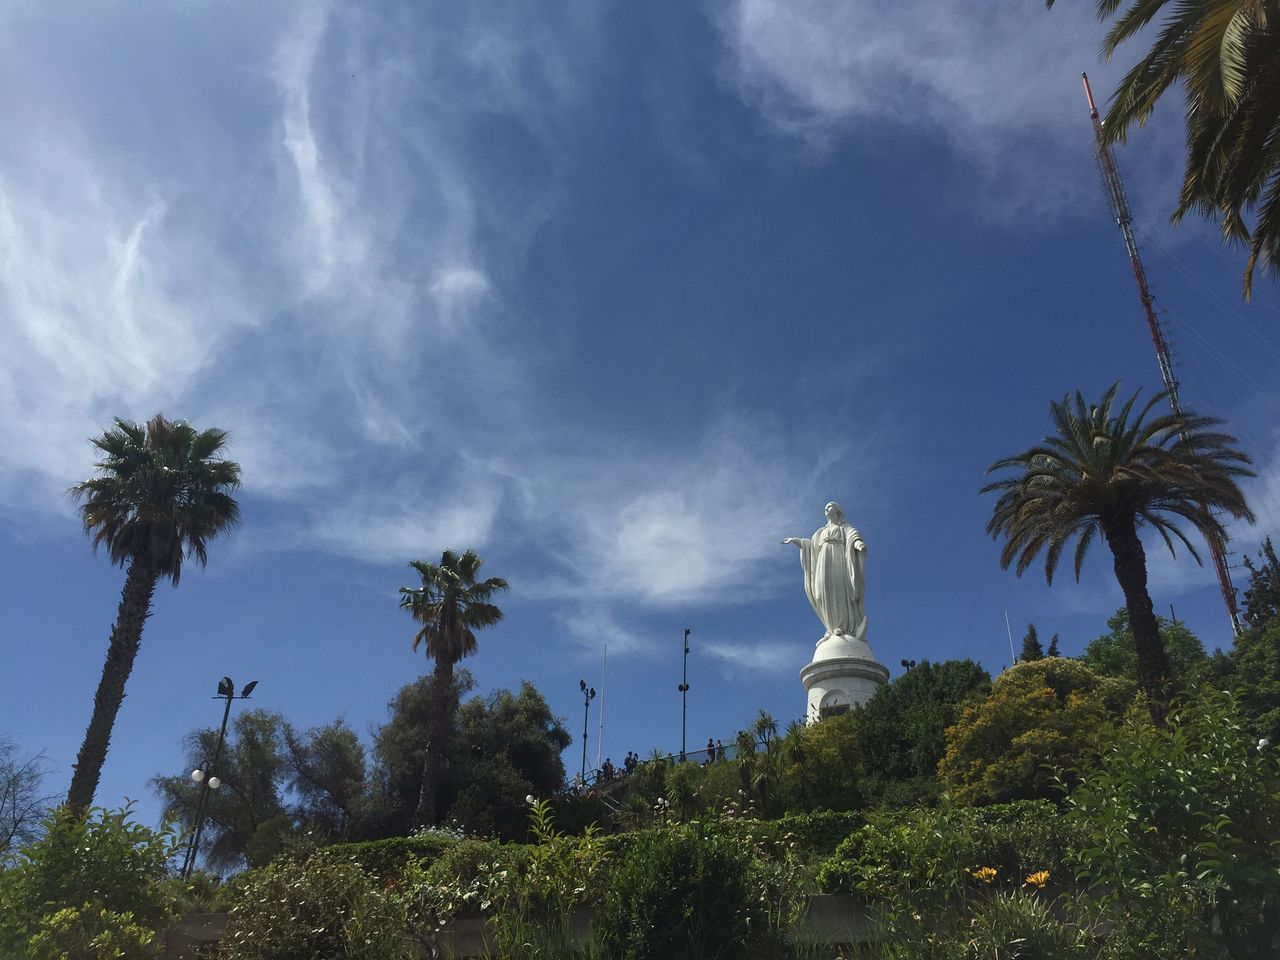 Beauty In Nature Cerro San Cristóbal Chile Christ Cloud - Sky Day EyeEmNewHere Female Likeness Human Representation Low Angle View Male Likeness Nature No People Outdoors Palm Tree Sculpture Sky Statue Travel Travel Destinations Tree Virgin Mary EyeEmNewHere Neighborhood Map